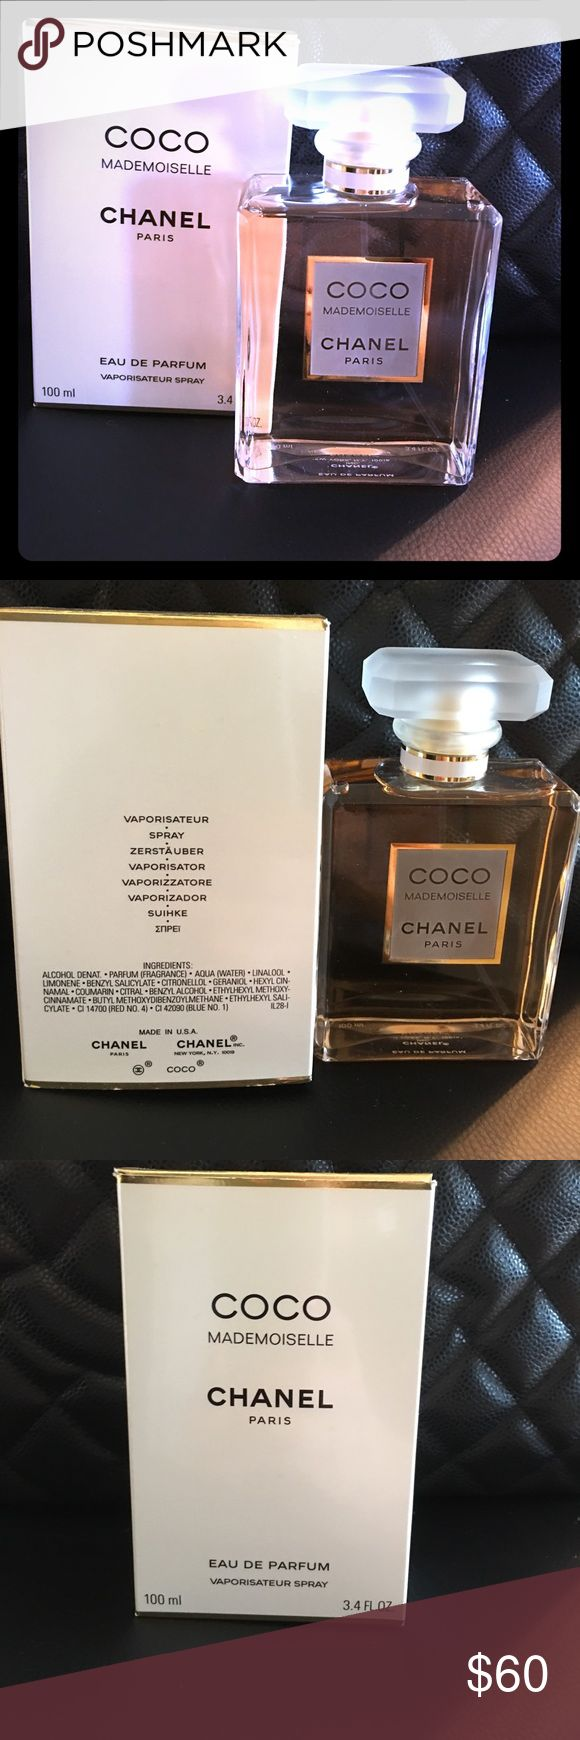 Perfume brand new. CHANEL. Paris CHANEL . COCO mademoiselle. Brand new in box .  Eau de parfum . 100 ml . 3,4 Fl oz. Other